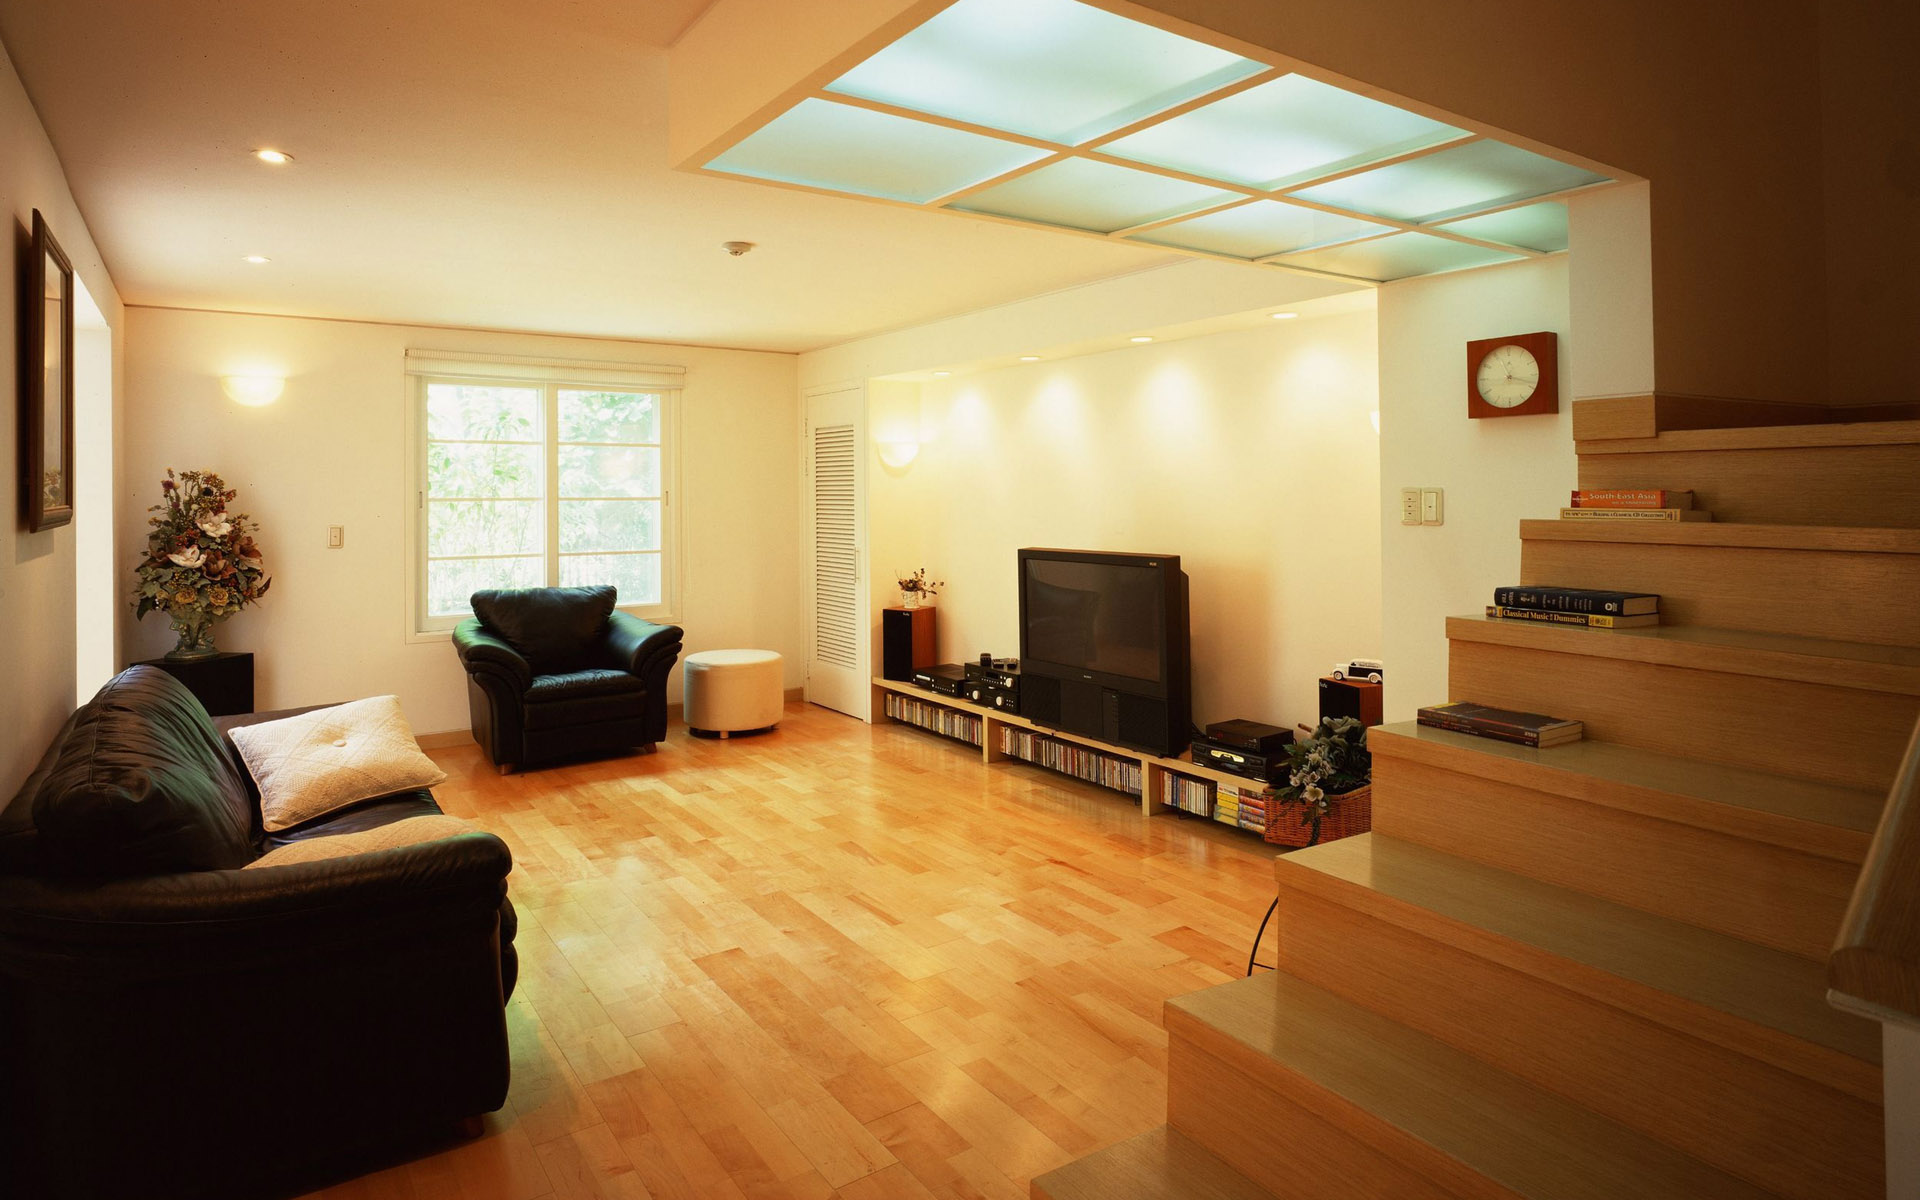 house interior lighting. Effective Views Of Artificial Lights To Make Your Home Elegant House Interior Lighting